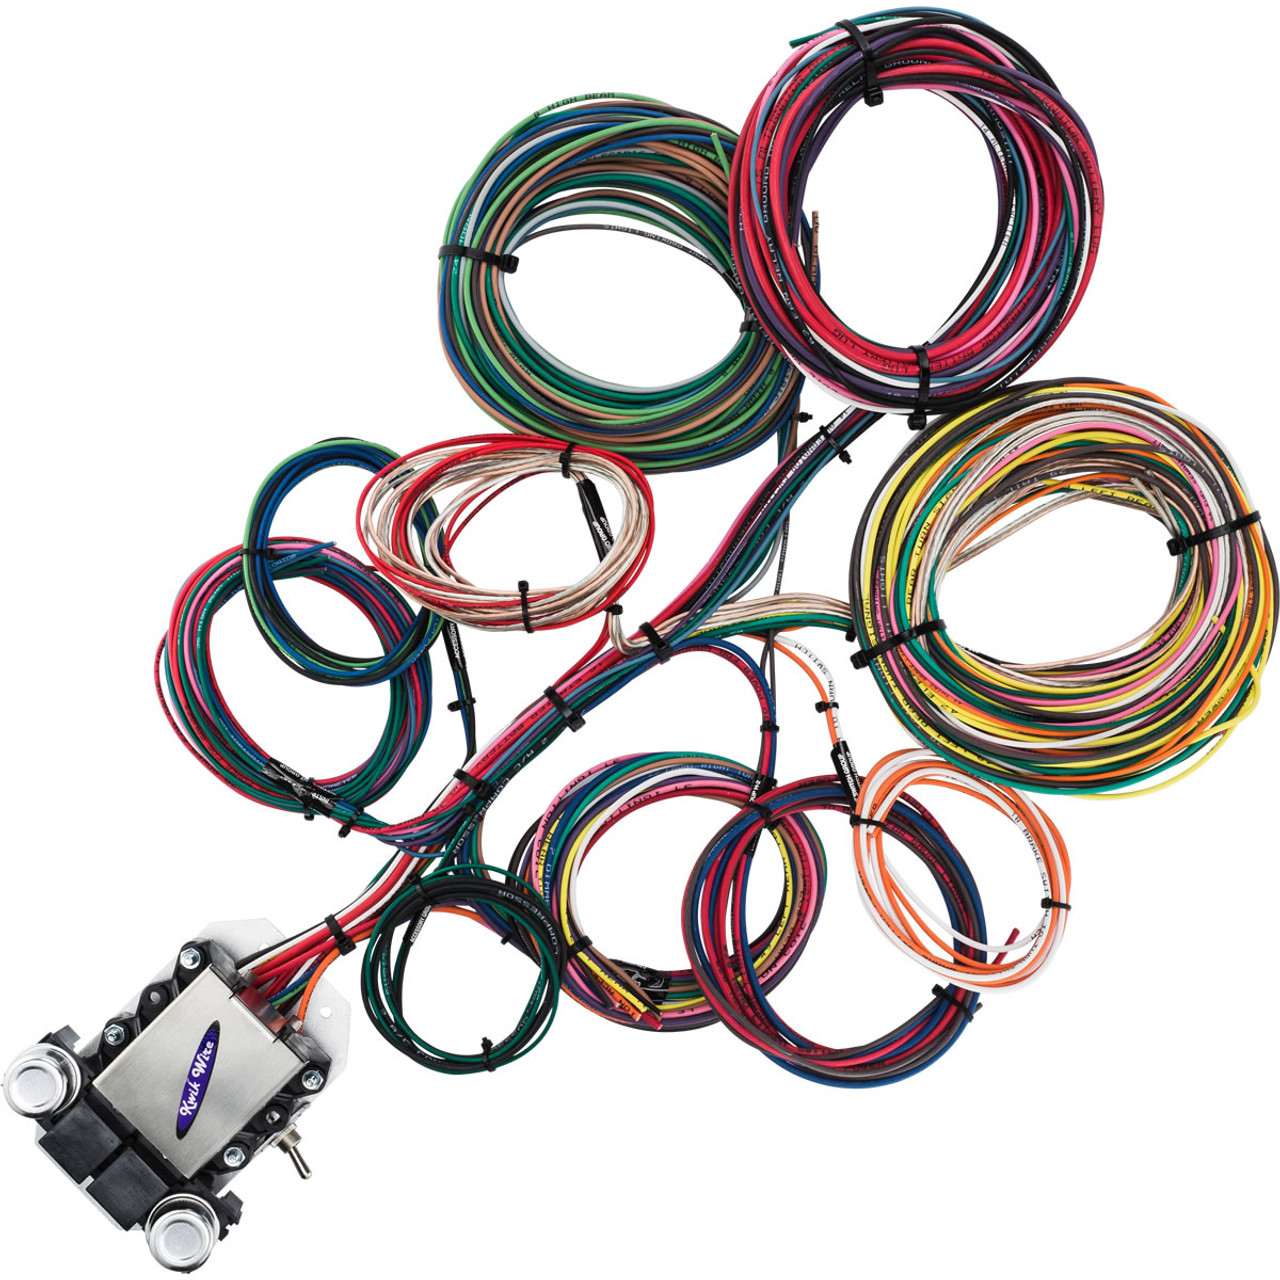 medium resolution of 14 circuit ford wire harness kwikwire com electrify your ride ford wiring harness kits e40d ford wiring harness